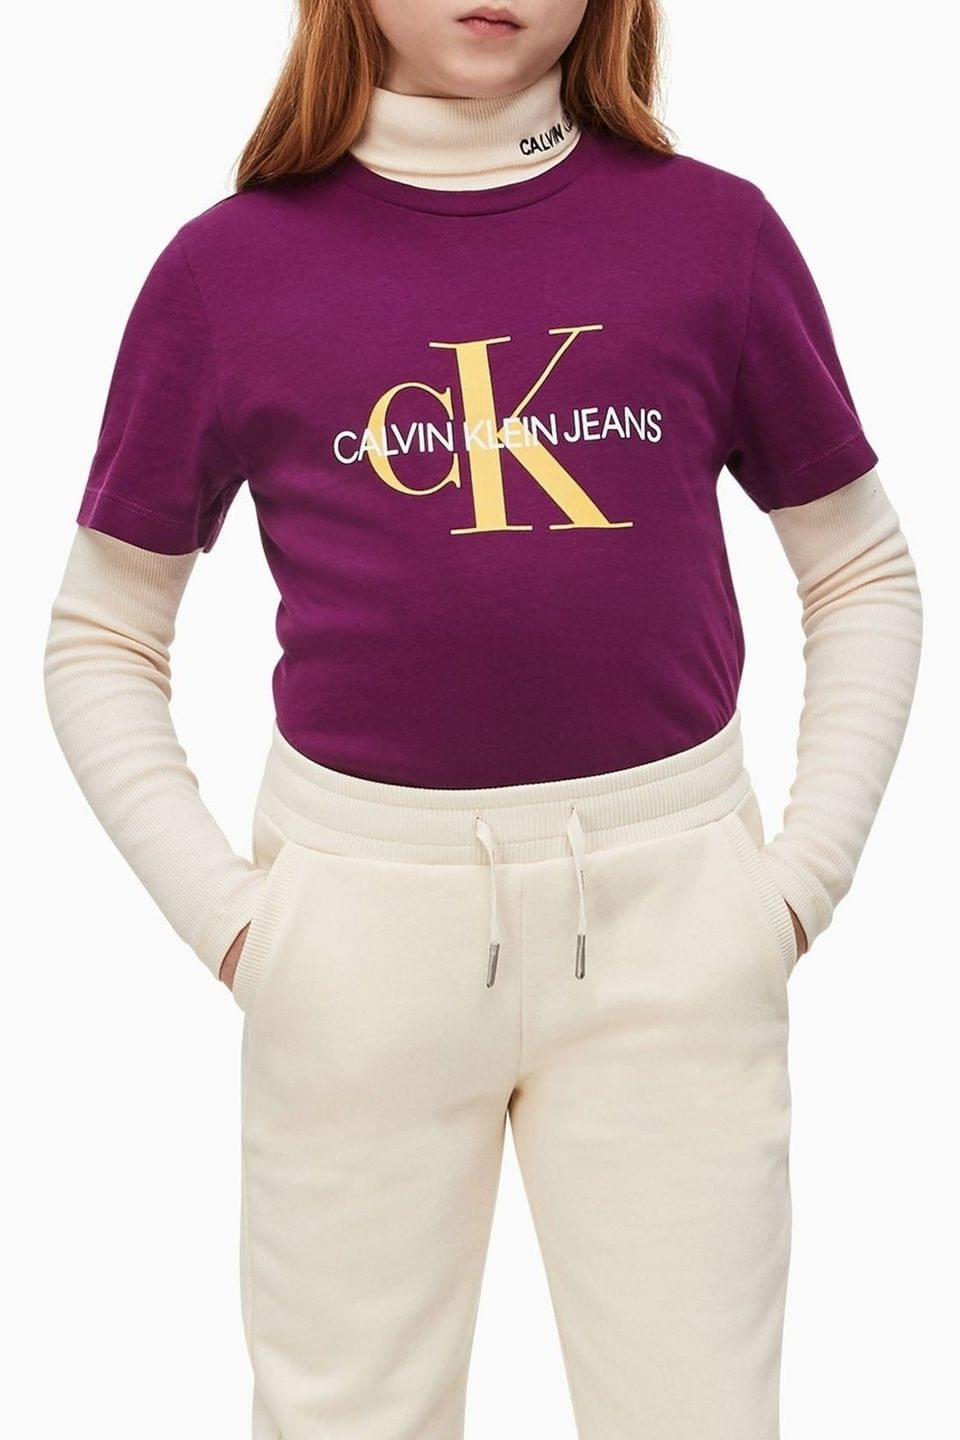 Girl's Calvin Klein Jeans Purple Monogram T-Shirt